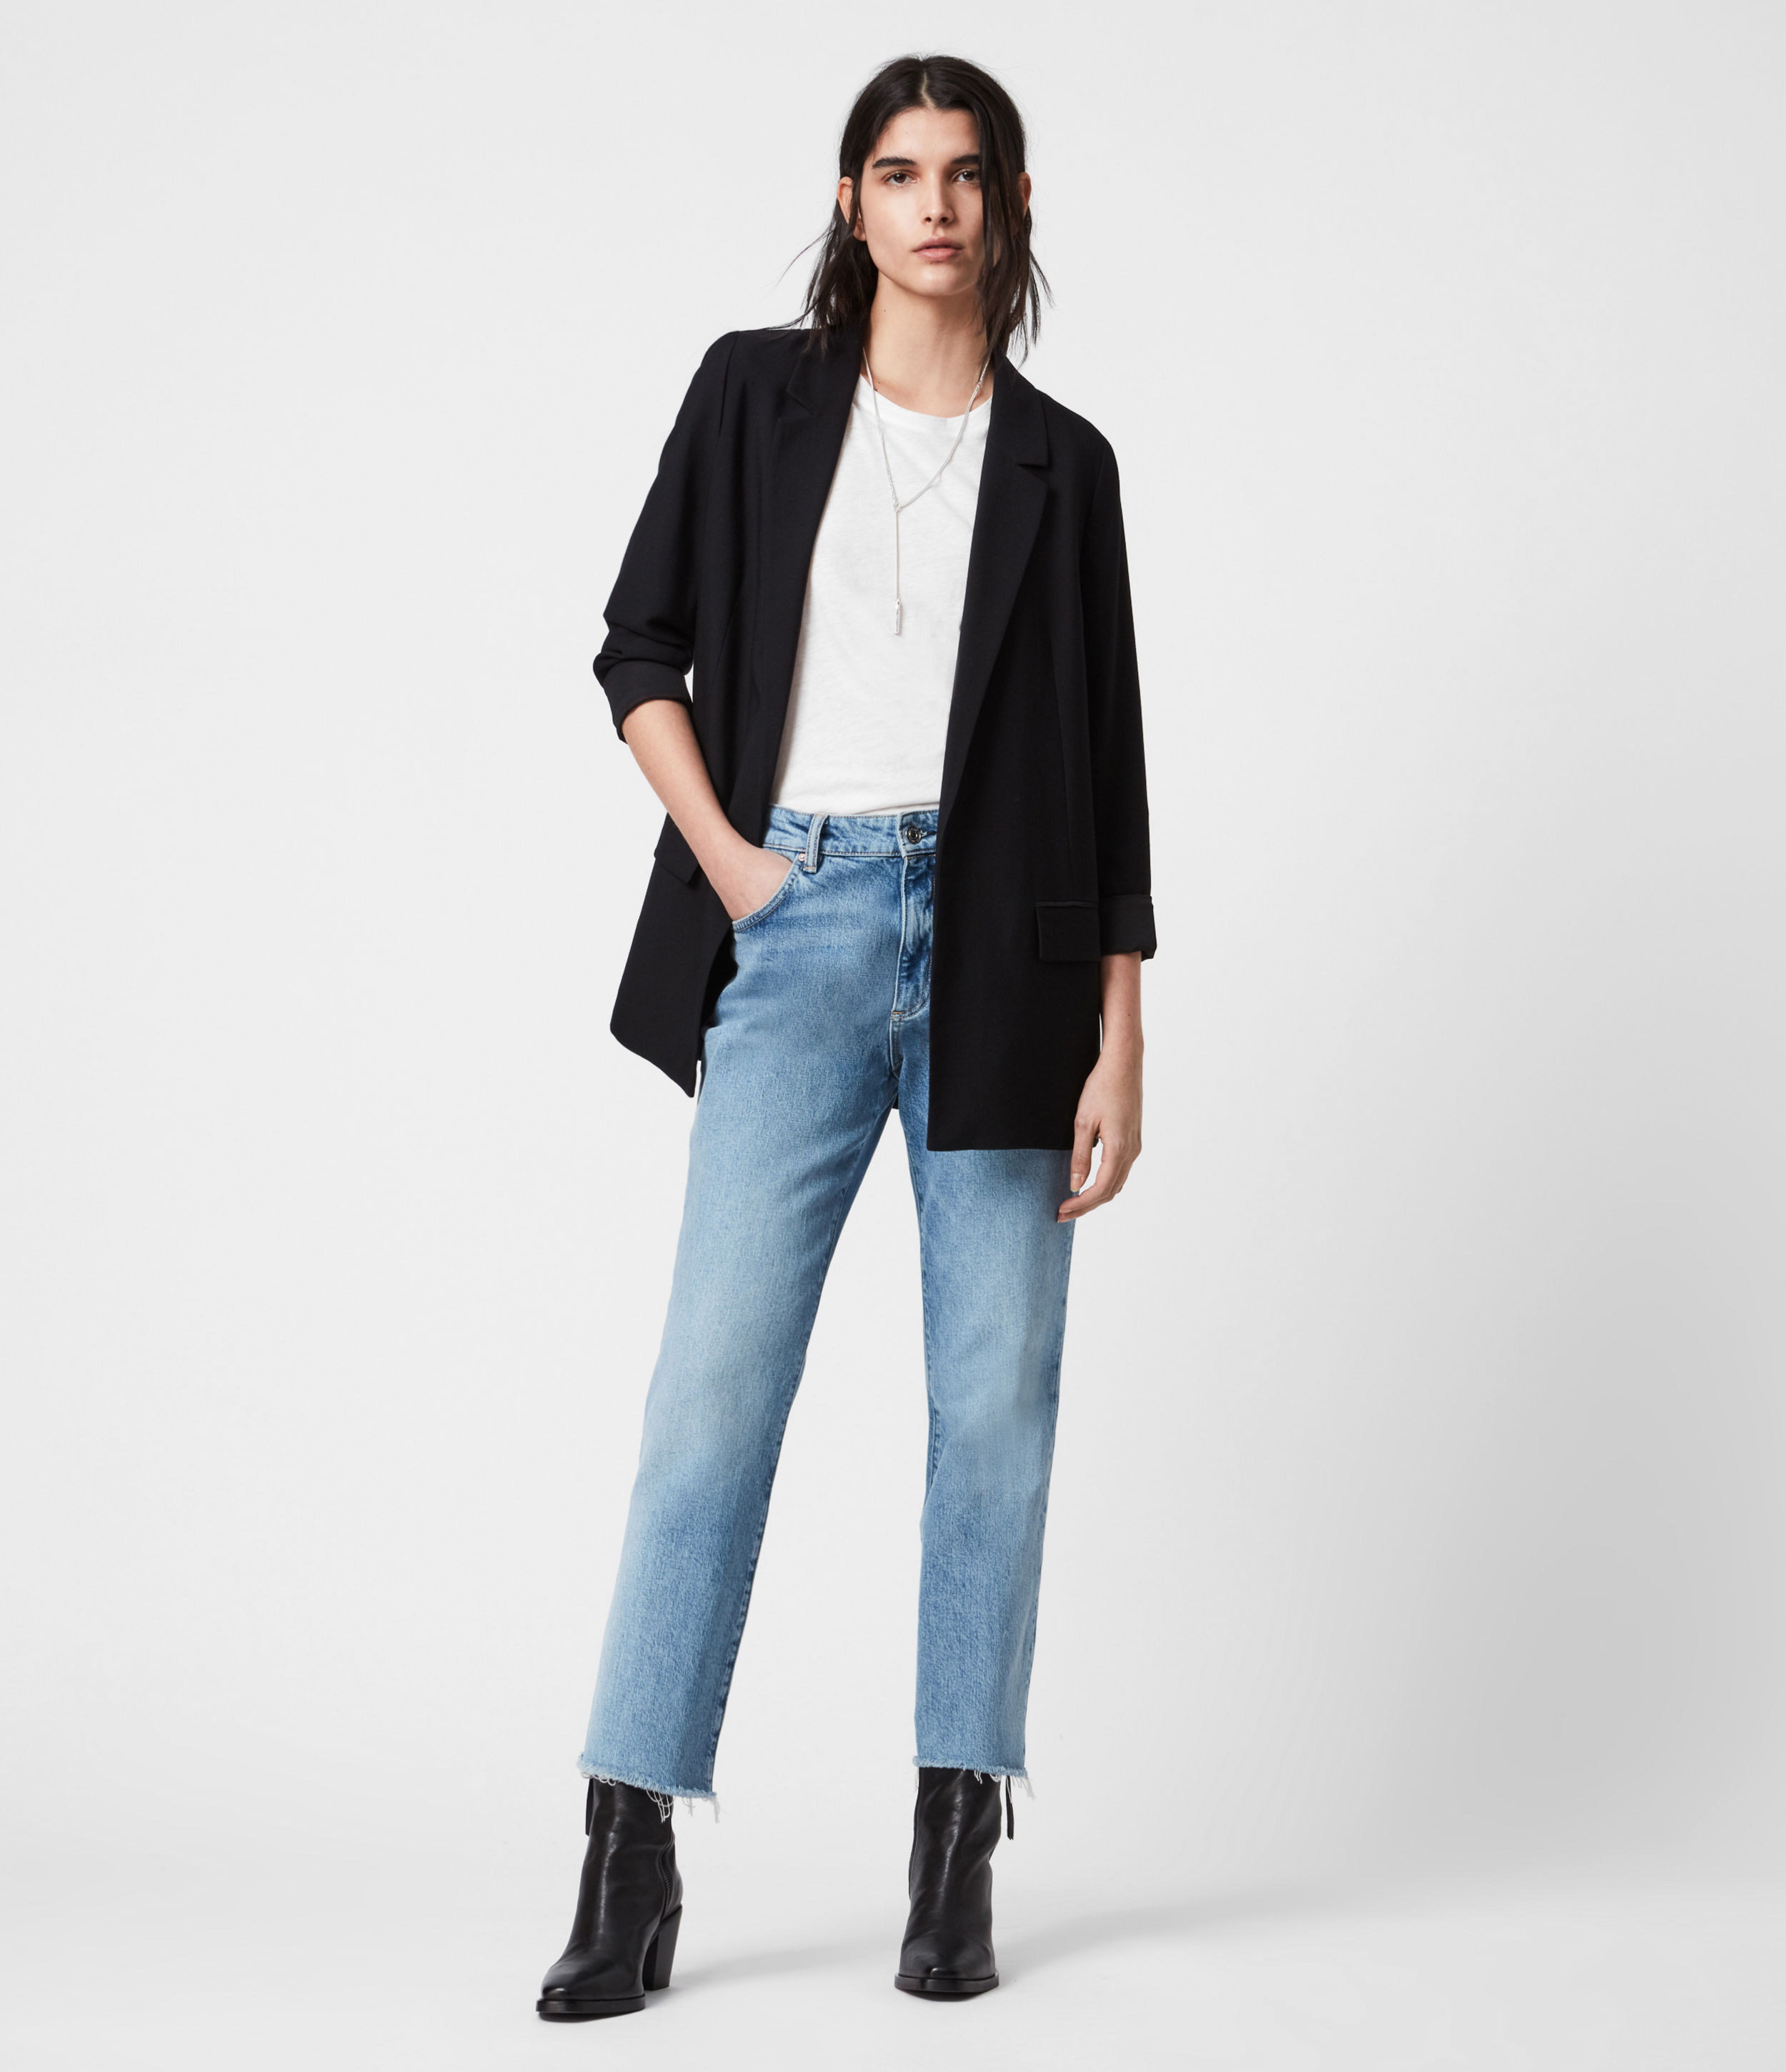 AllSaints Women's Regular Fit Traditional Two Flap Pocket Tailored Aleida Blazer, Black, Size: 10